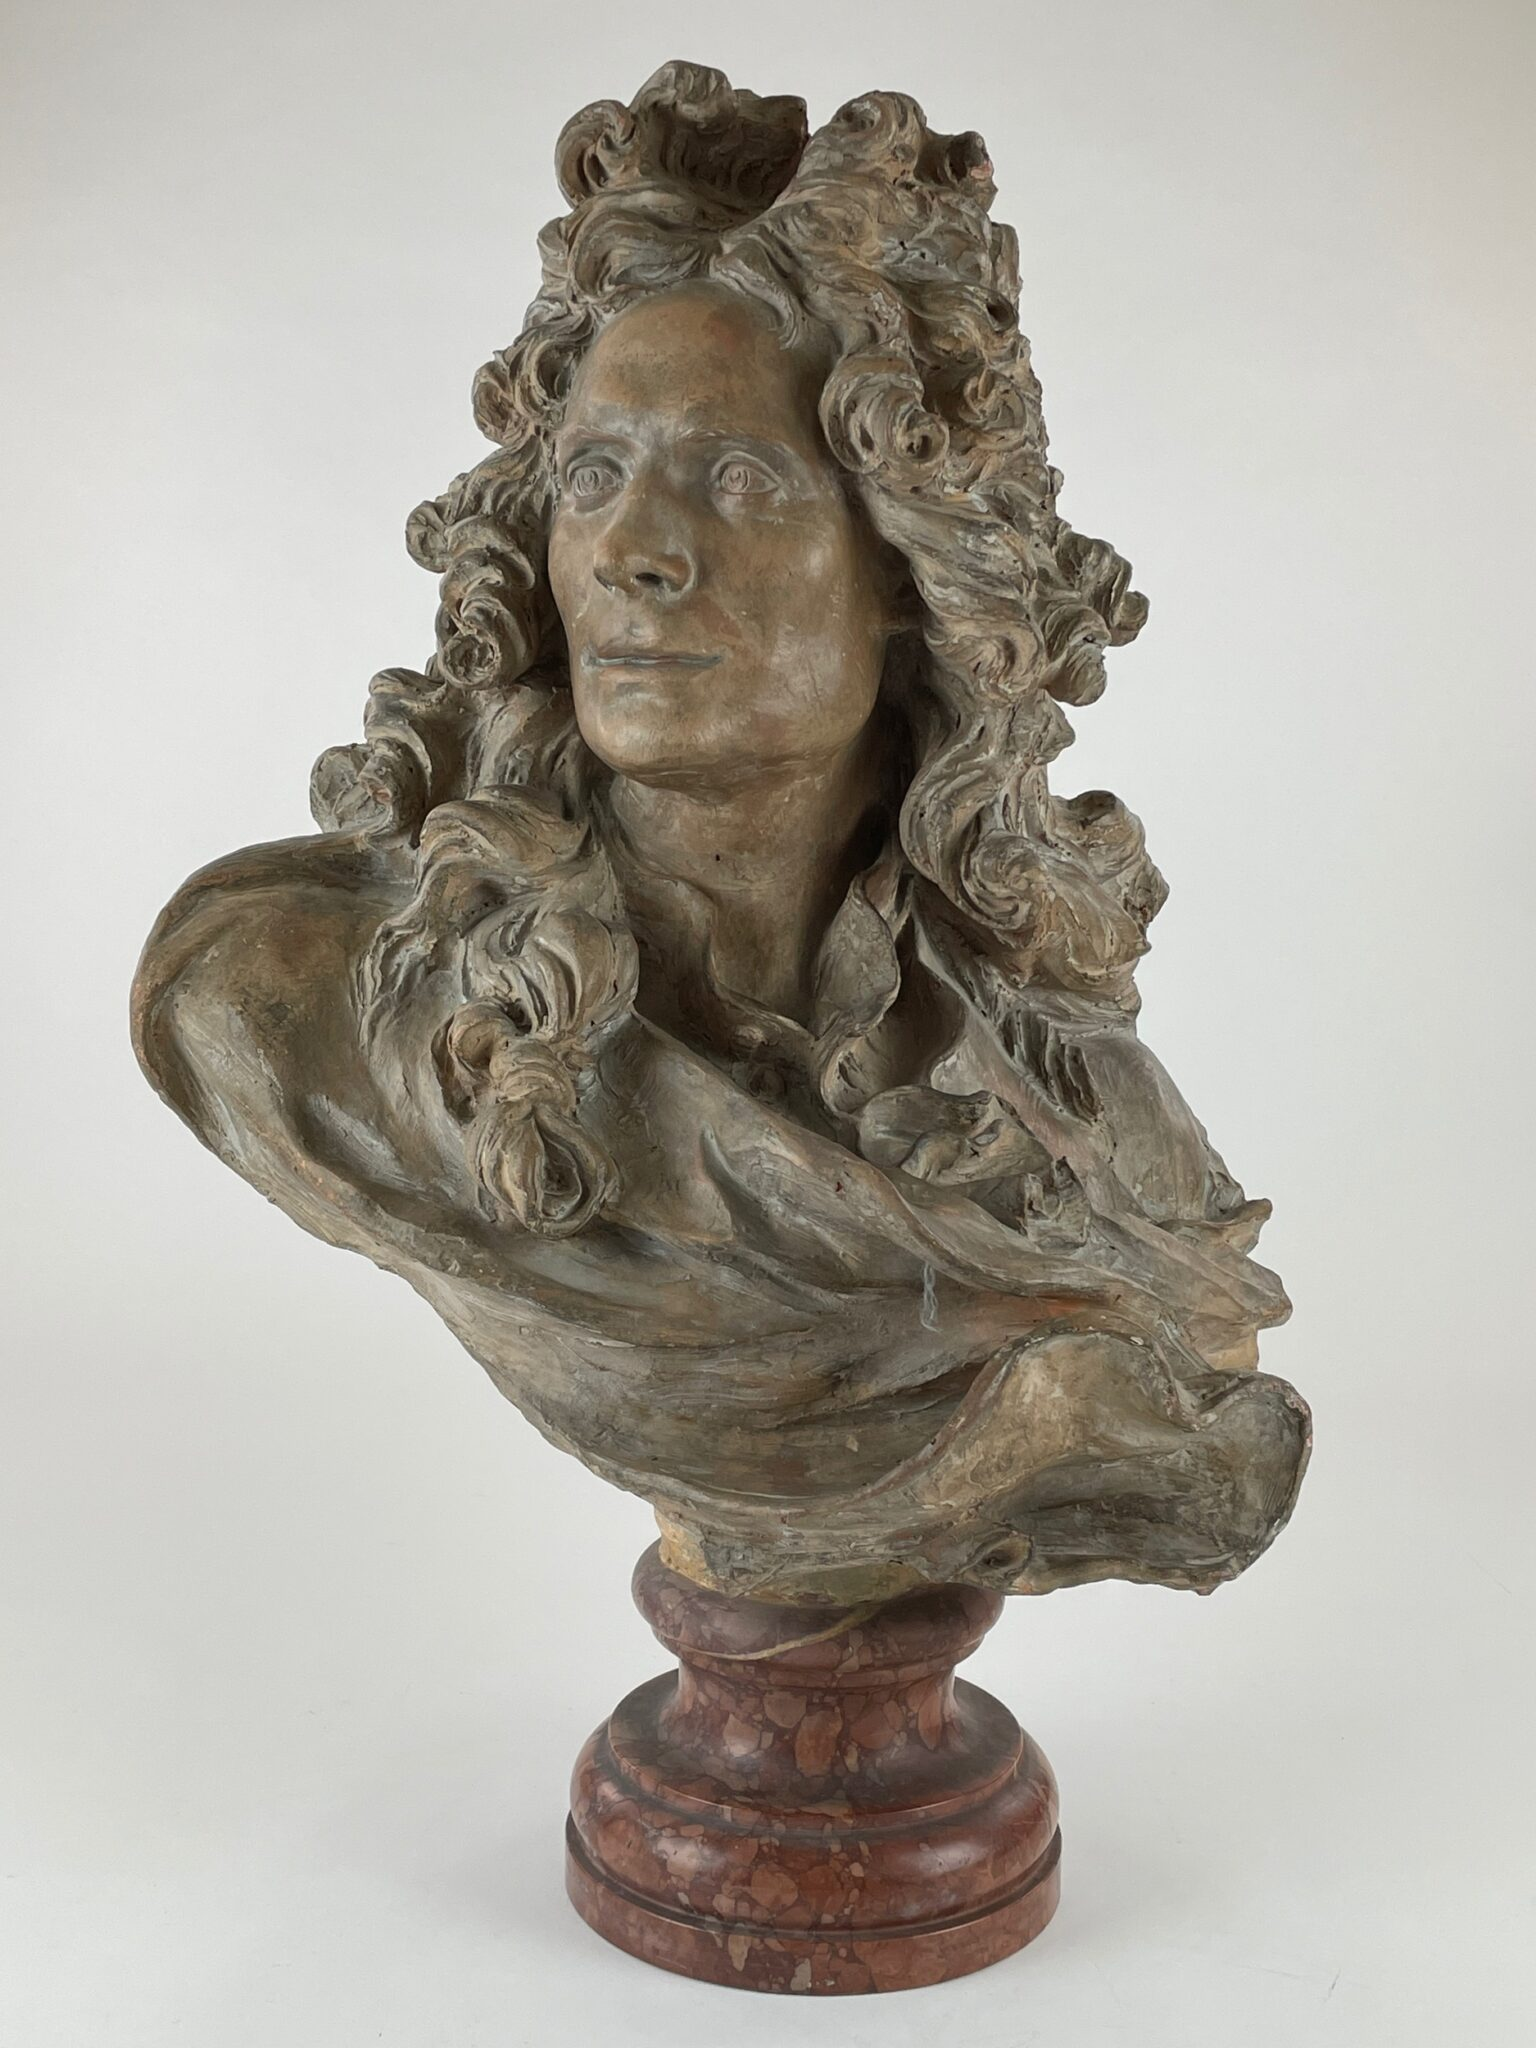 JEAN-JACQUES CAFFIERI | Sold for $5,660